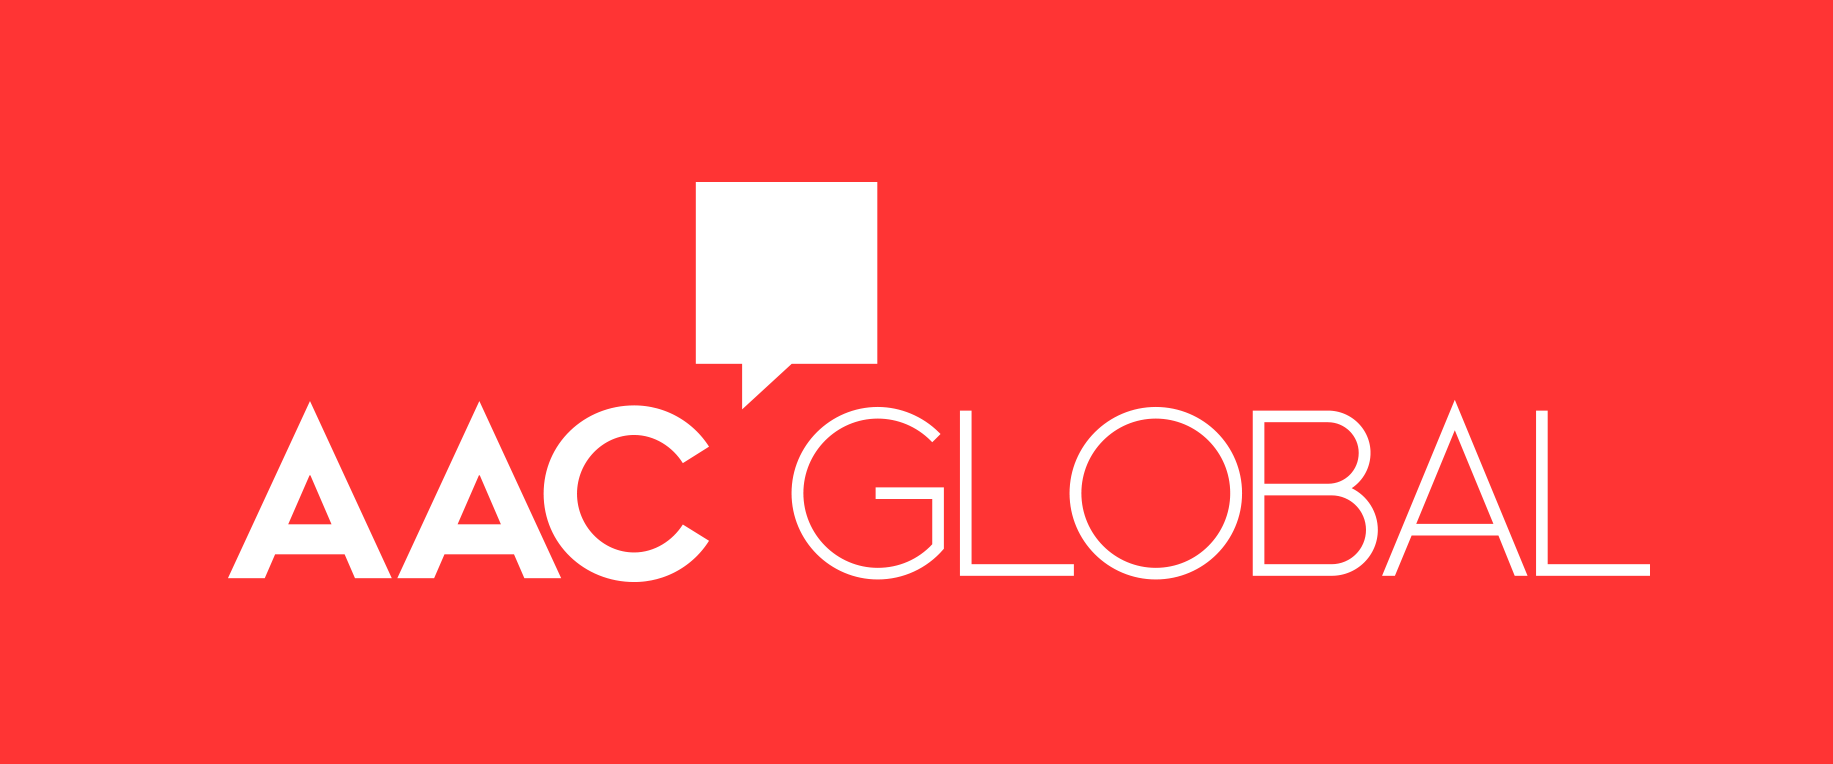 AAC Global Oy logo